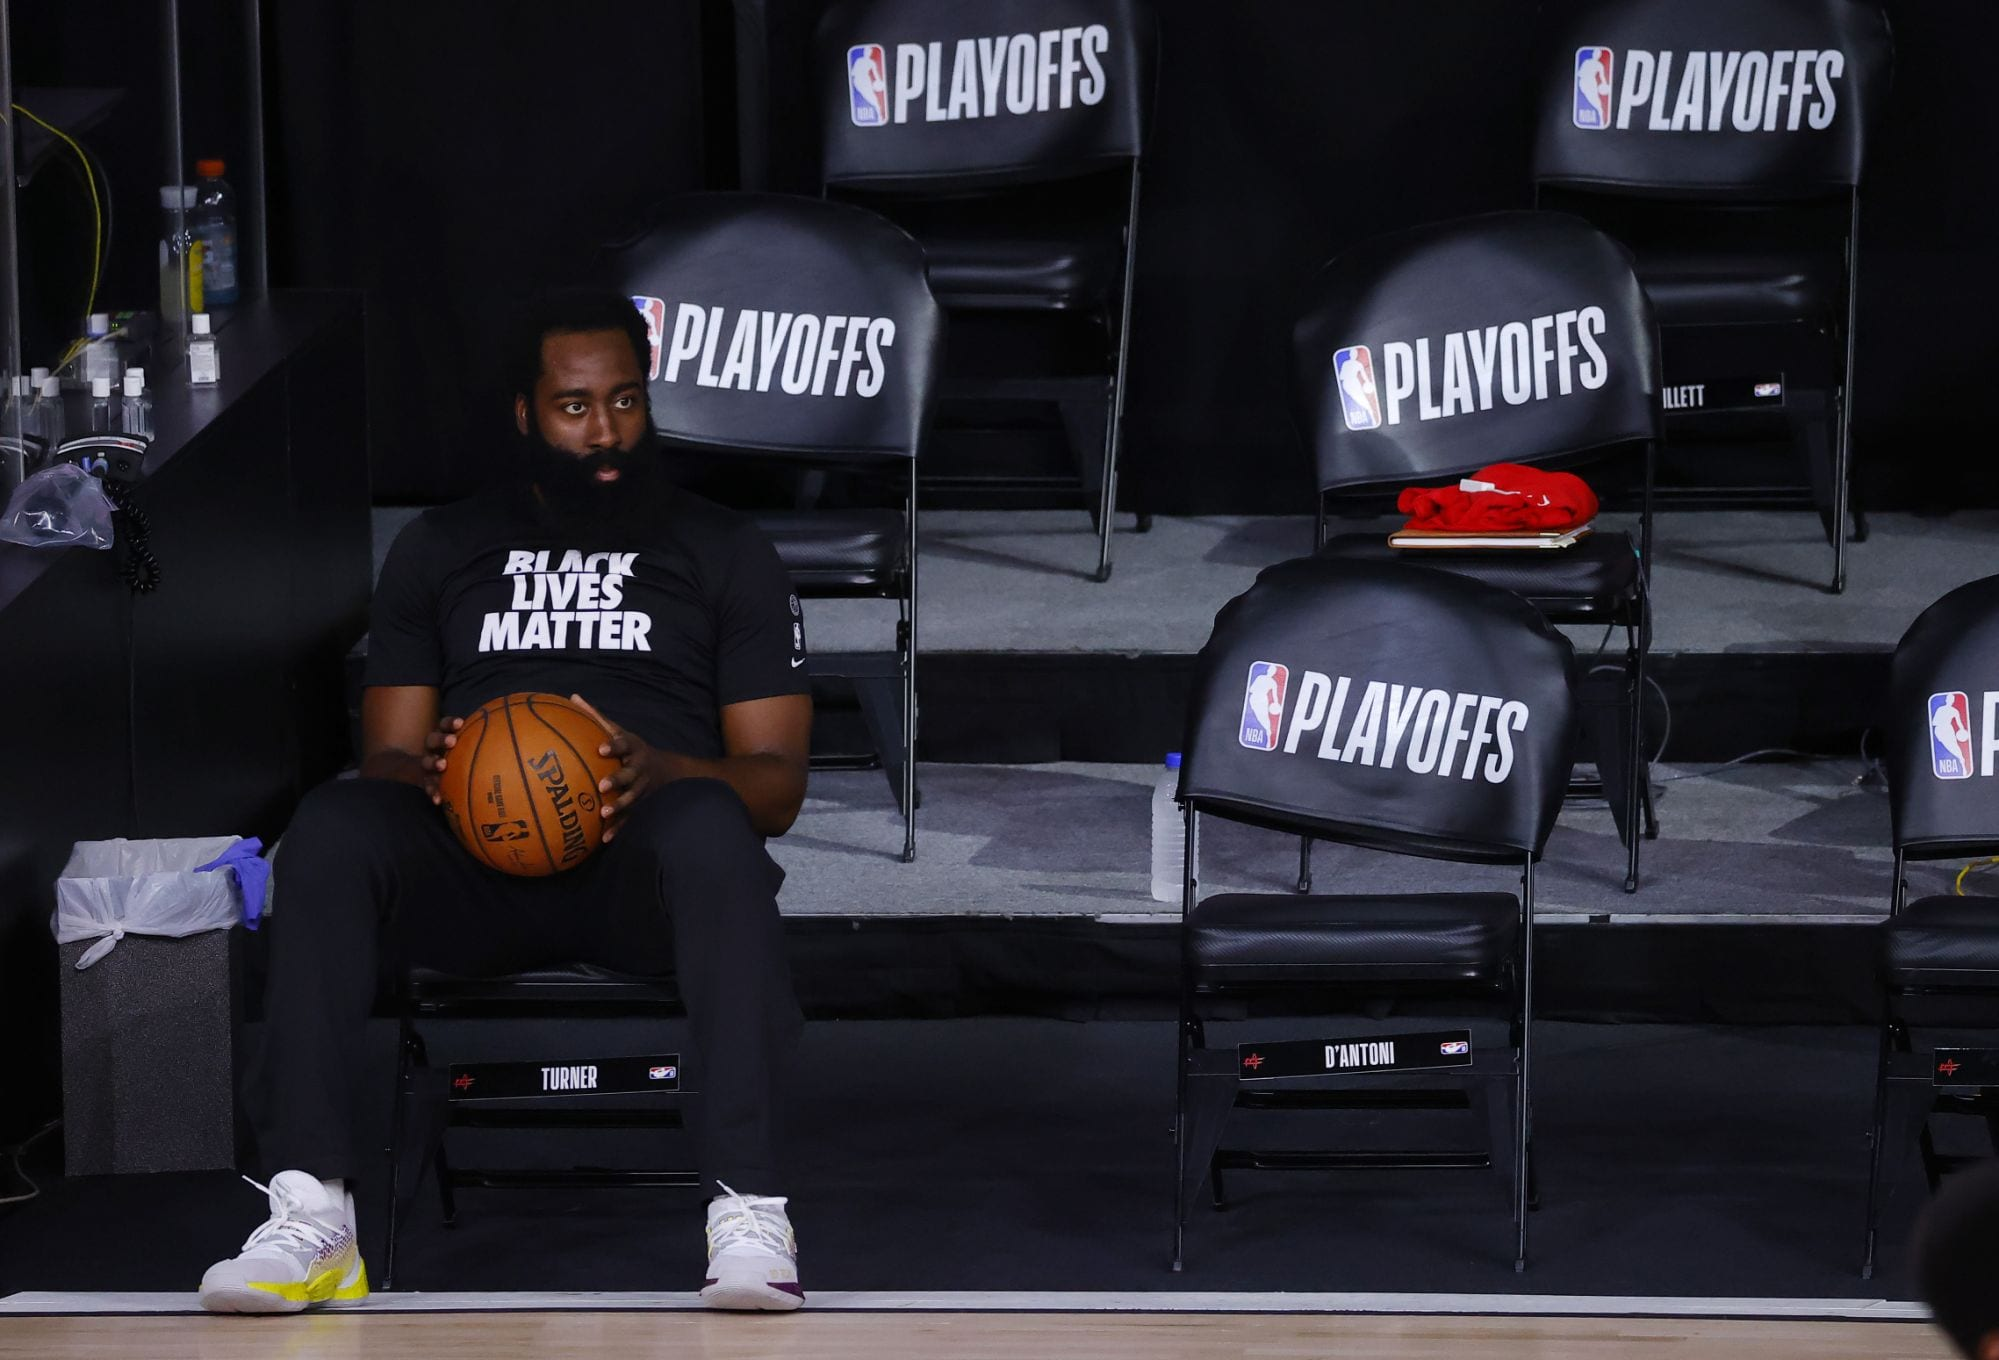 James Harden And New Coach Stephen Silas Have 'Good Conversation' At Rockets' Practice